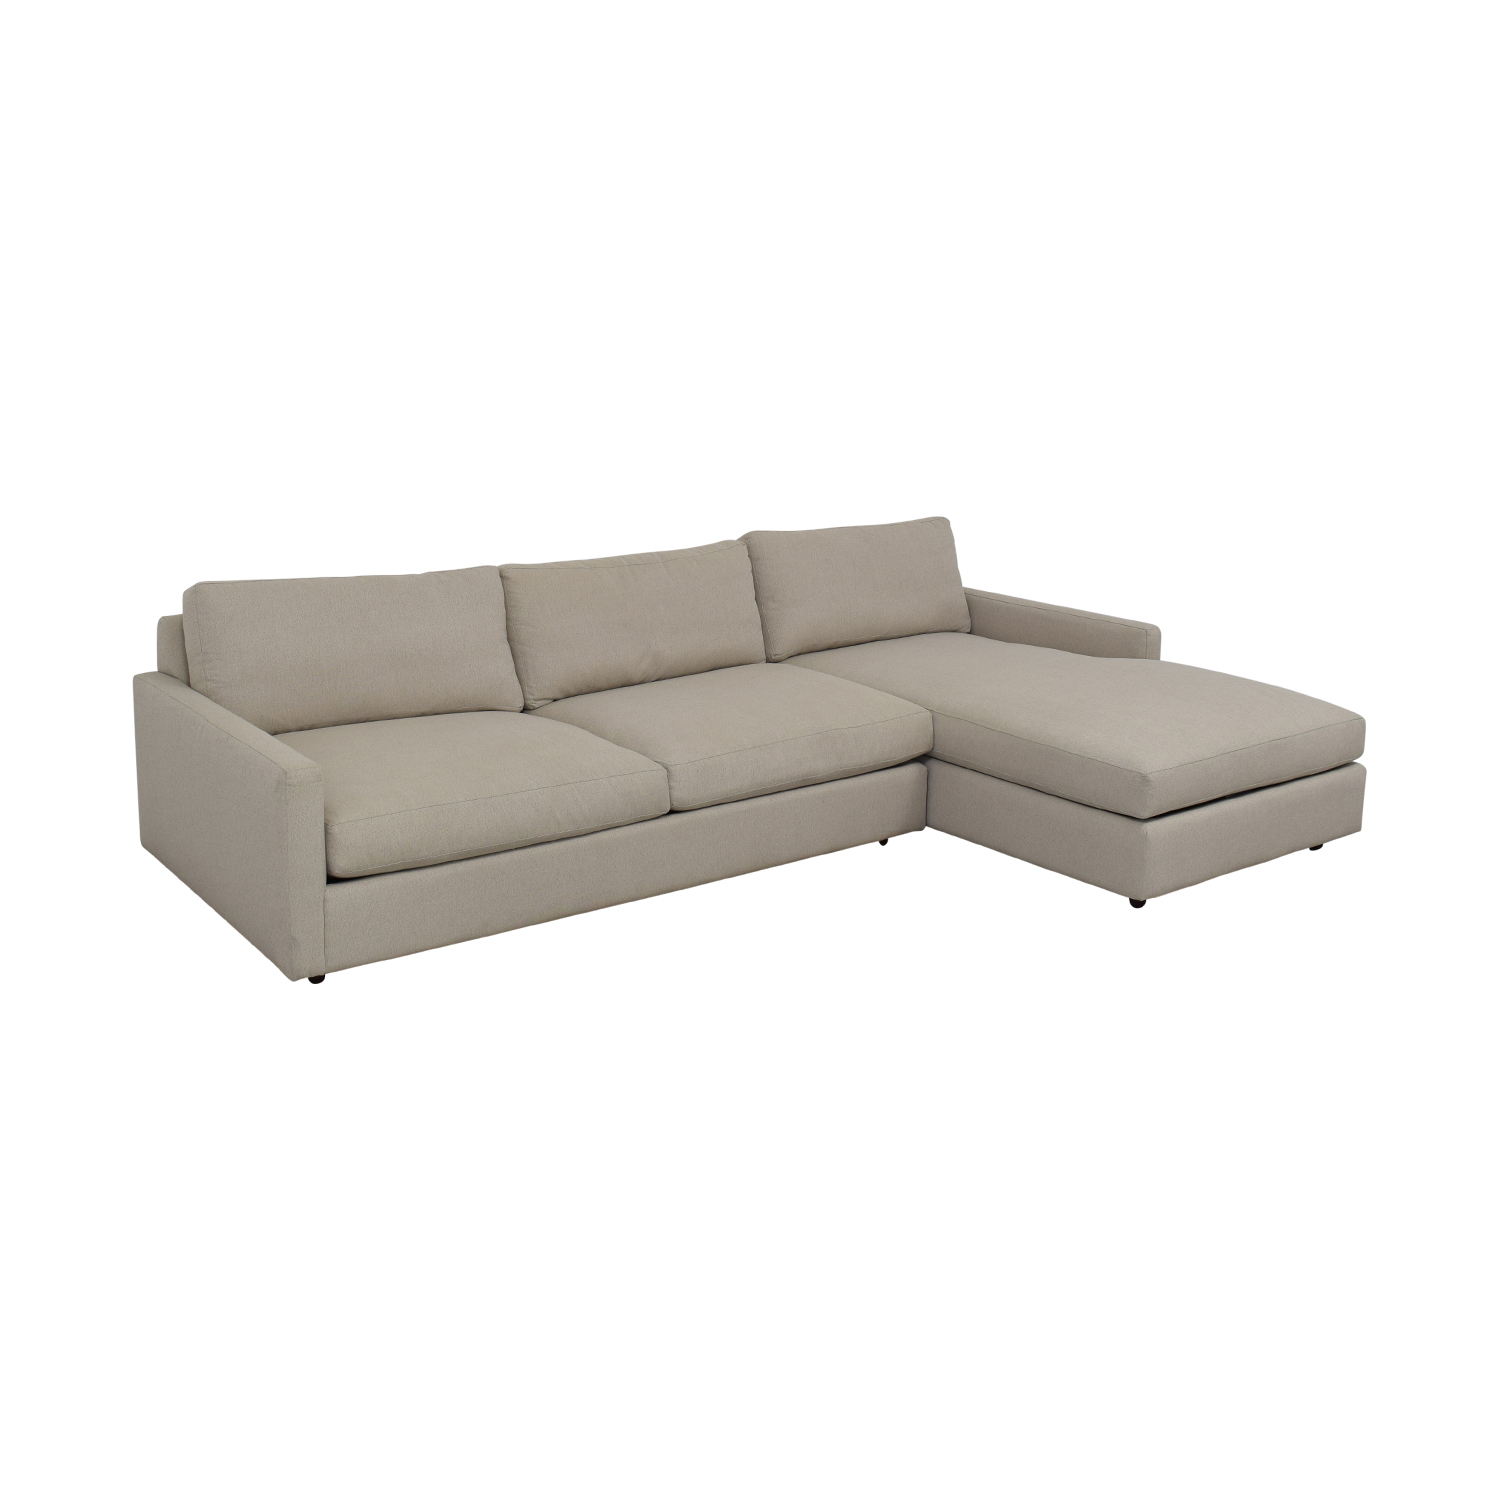 Room & Board Room & Board Linger Sofa with Chaise